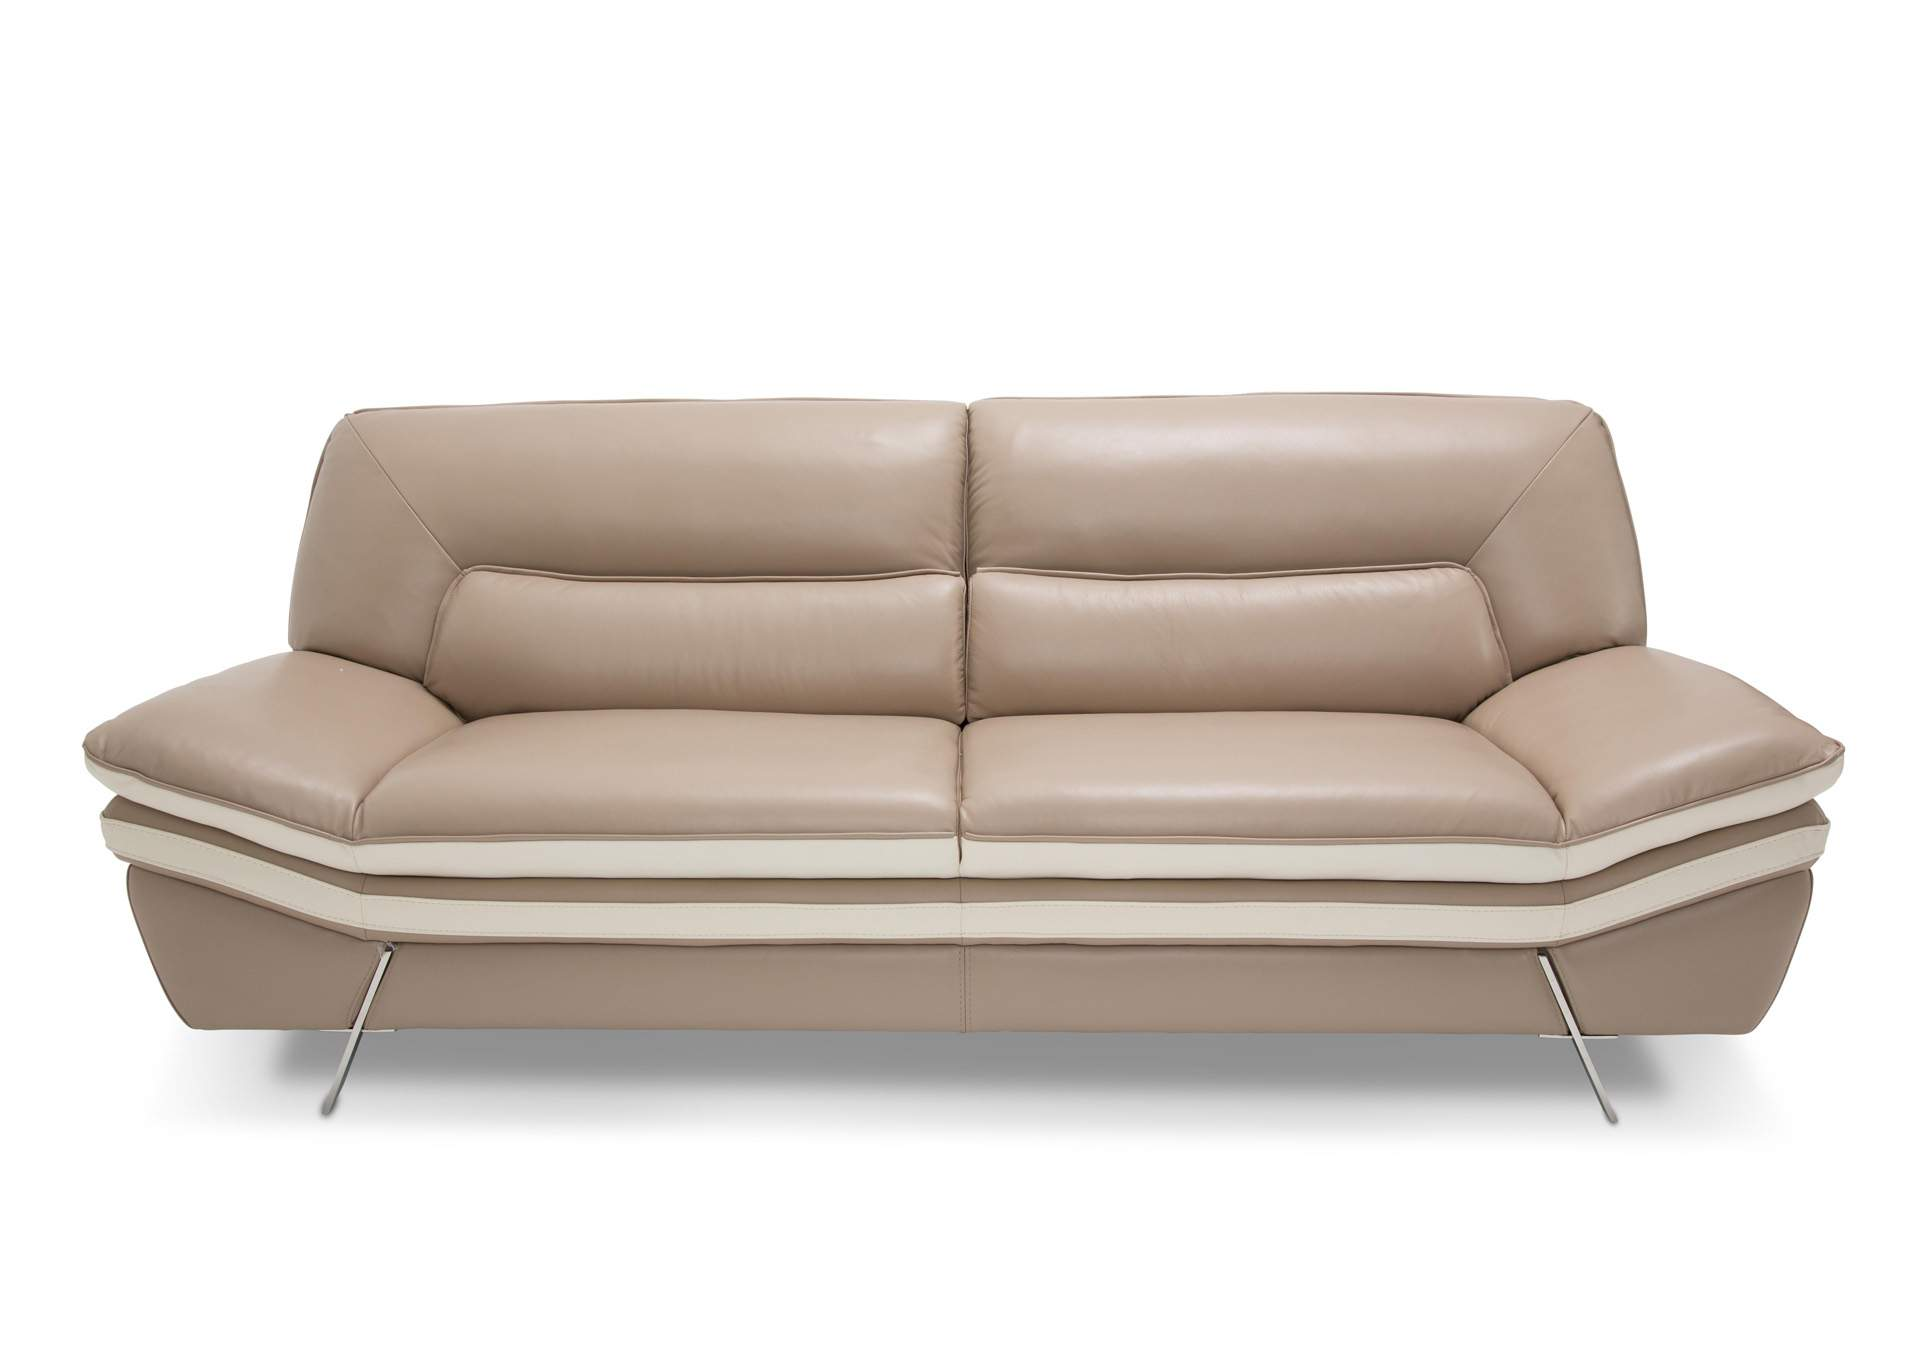 Carlin Taupe Leather Sofa W/Stainless Steel Legs,AICO